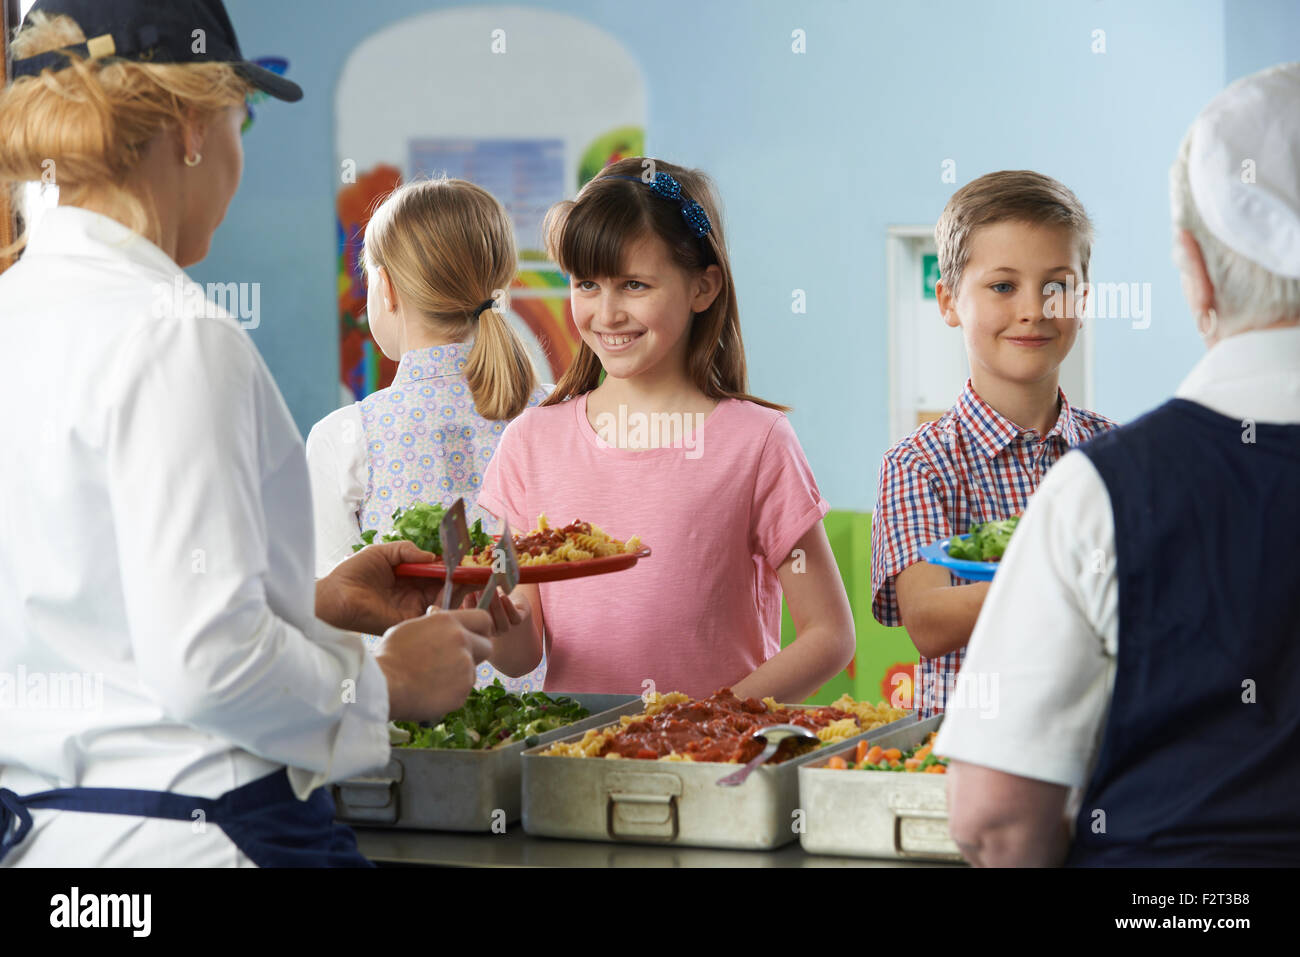 Pupils Being Served With Healthy Lunch In School Canteen - Stock Image